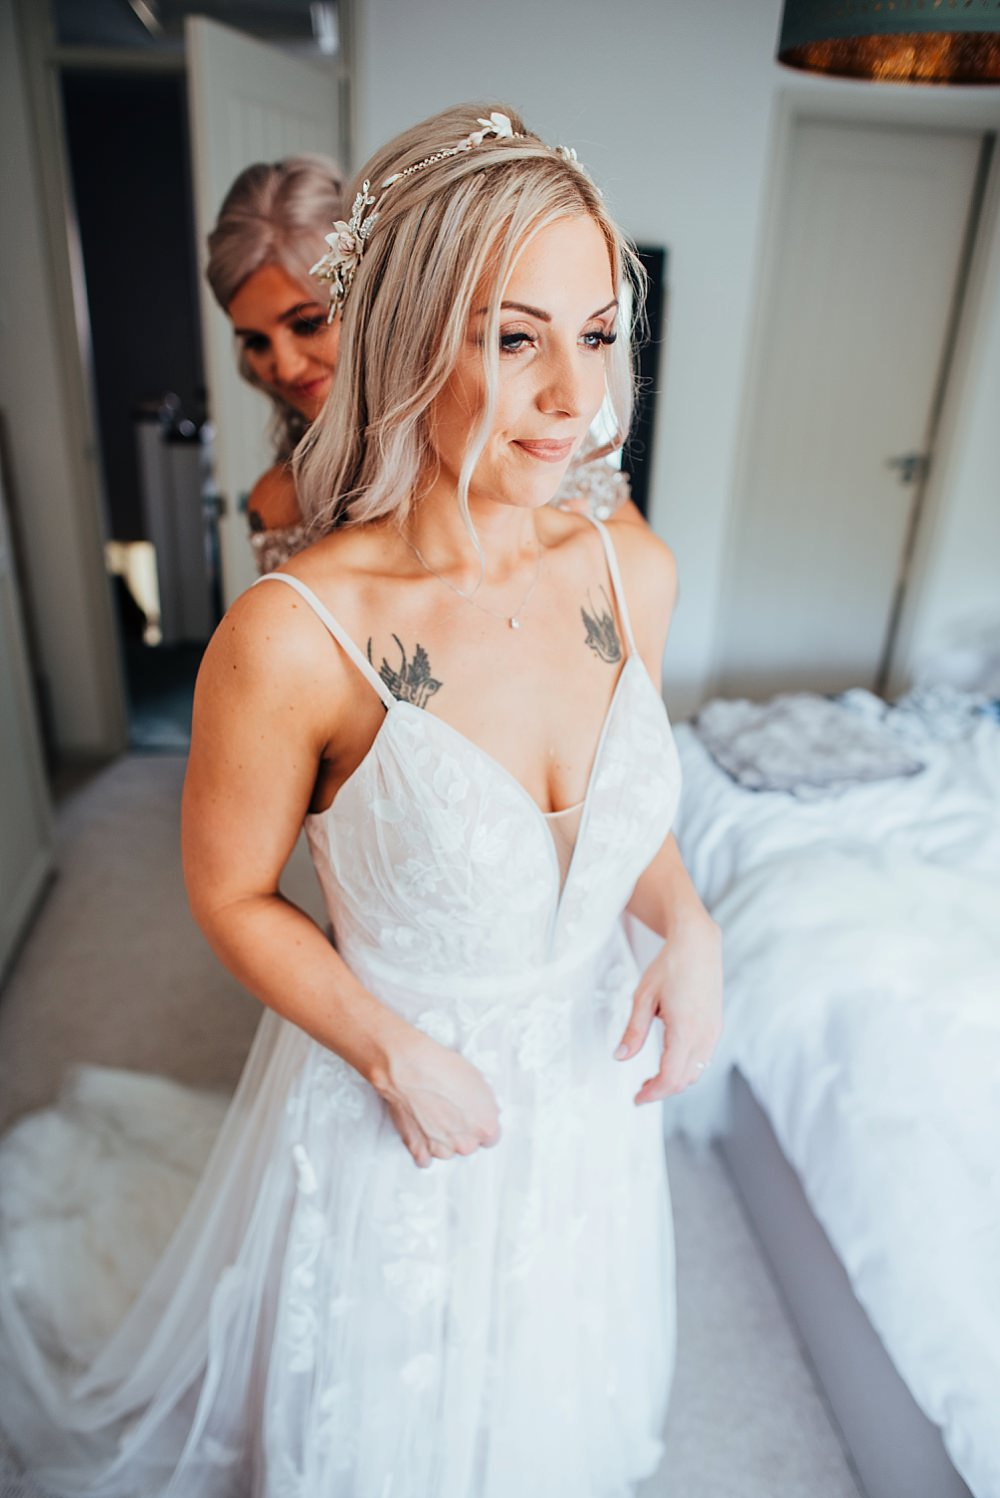 Bride Bridal Dress Gown Fox Bridal Nude Straps Train Boho Rustic Wedding This and That Photography